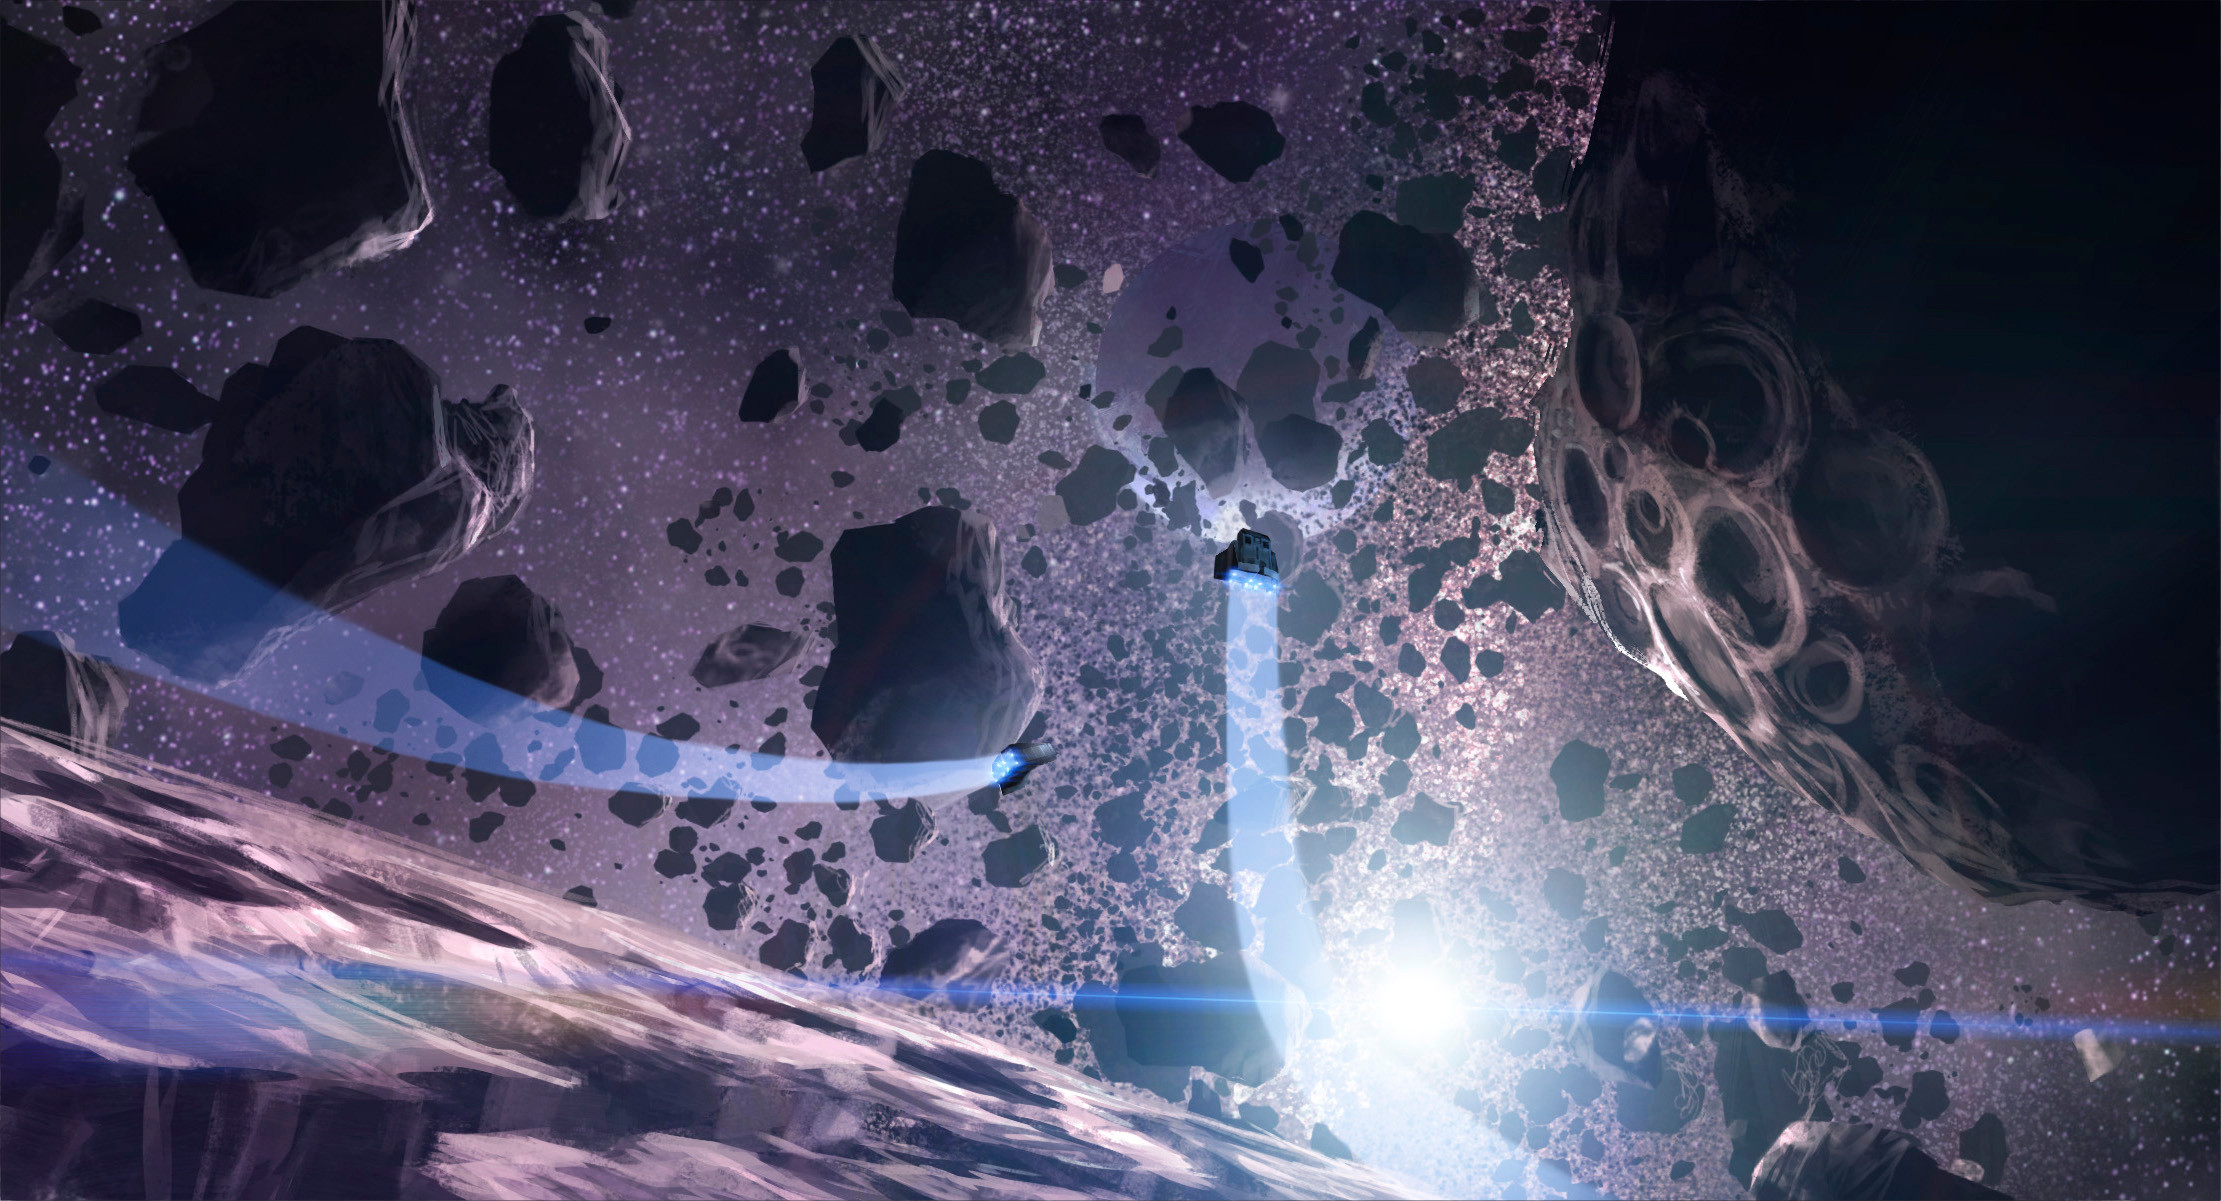 As we pull out into space, our view opens up on an intimidating sight: our destination planet lies on the other side of a dense field of asteroids and rocky debris. The Captain tells us we will have to slow and pick our way through, but there's no time!